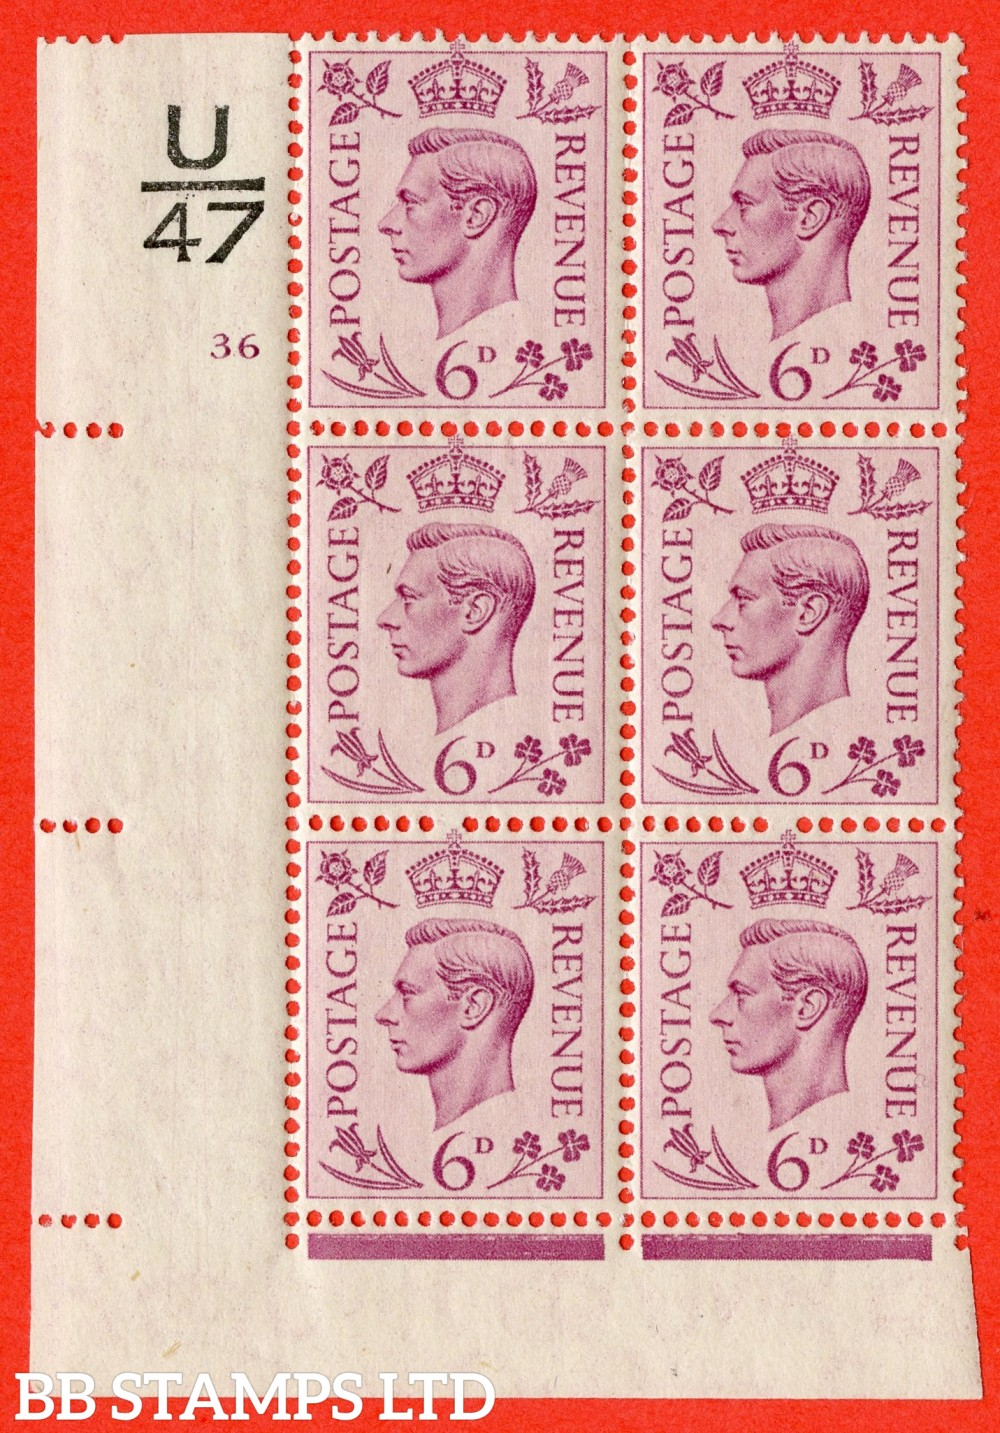 """SG. 470. Q22. 6d Purple. A fine lightly mounted mint """" Control U47 cylinder 36 no dot """" control block of 6 with perf type 2 E/I"""